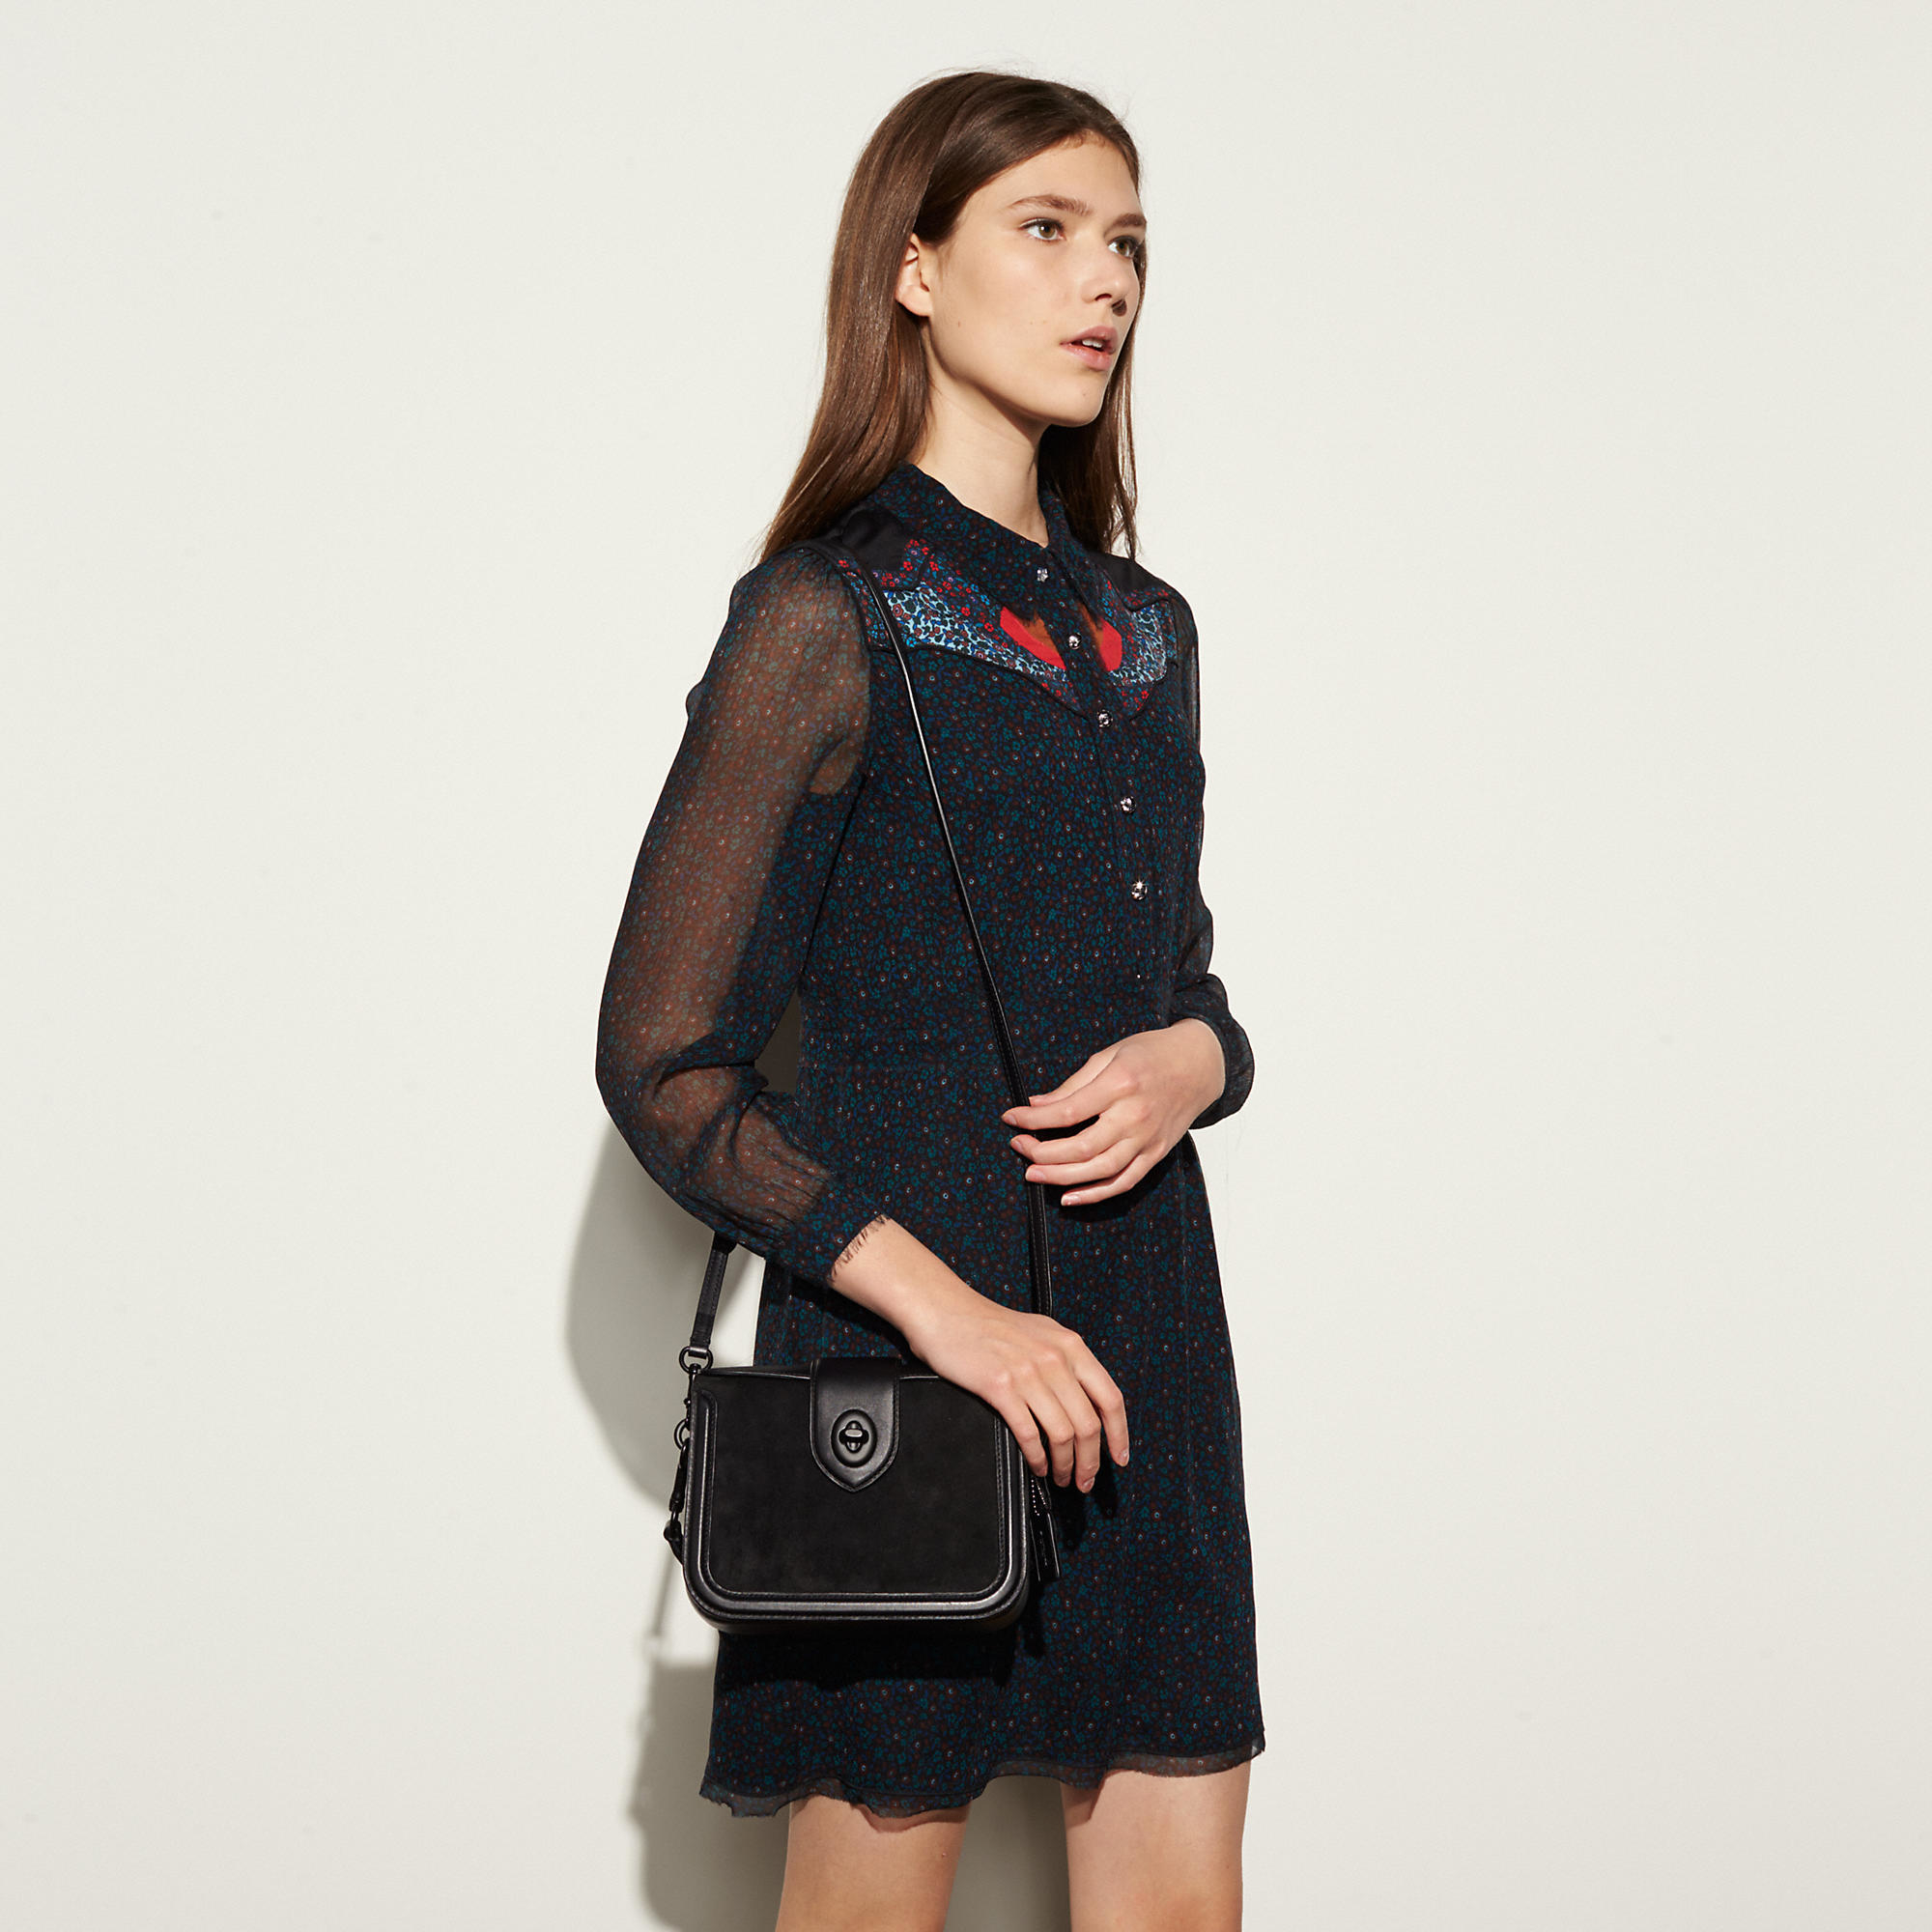 229e9d3d27 ... official store lyst coach page crossbody in mixed leather in black  457e6 1e598